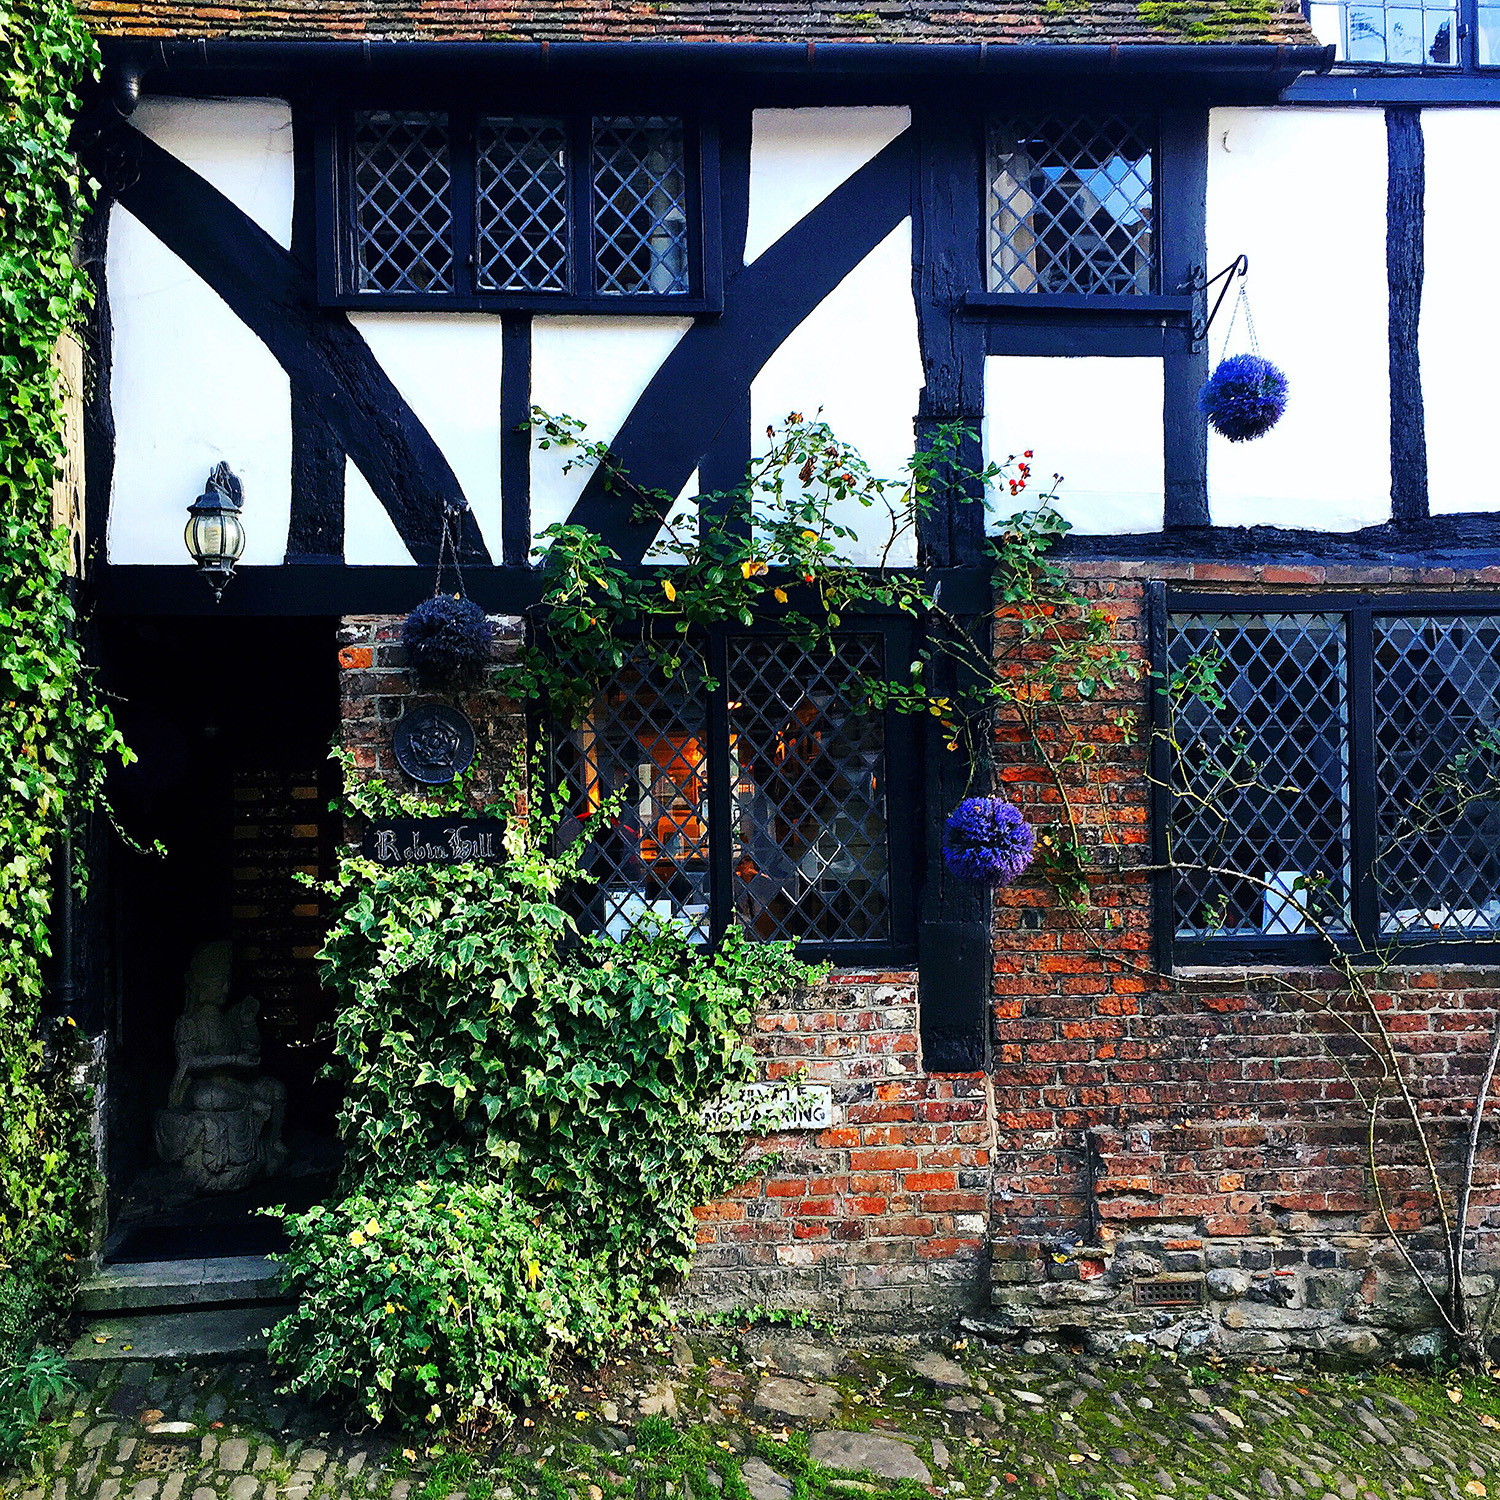 rye-walking-house-town-history-sussex-travel-blog-blogger-theinkcloset.JPG